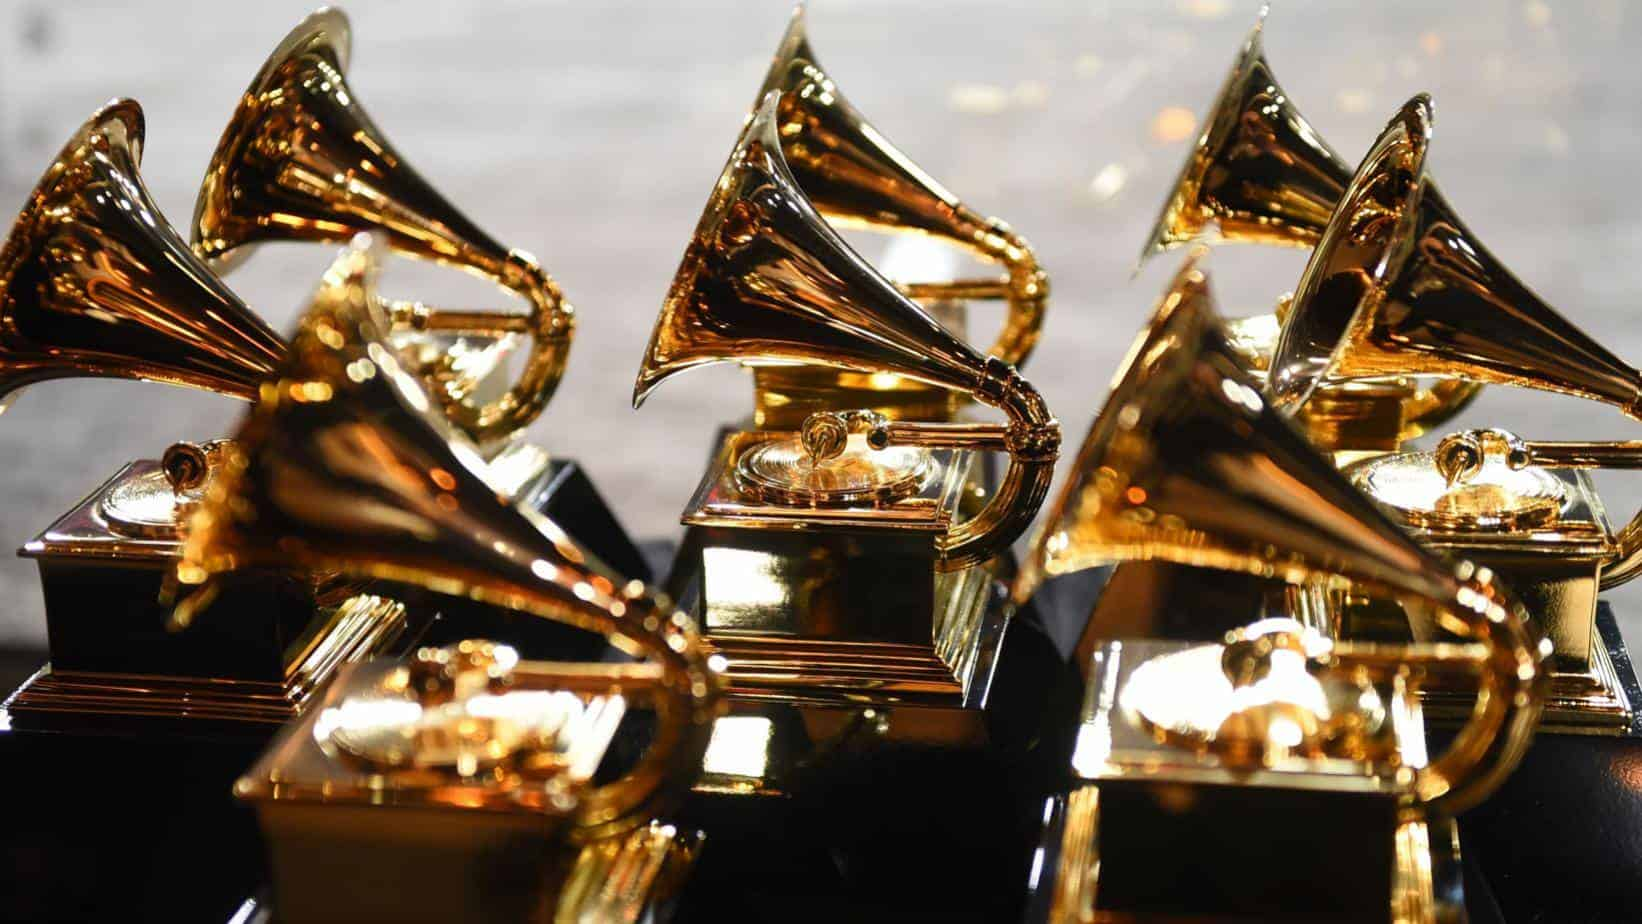 Photo of Grammy Awards 2019: tutte le info, Nominations, Performers, Presentatori